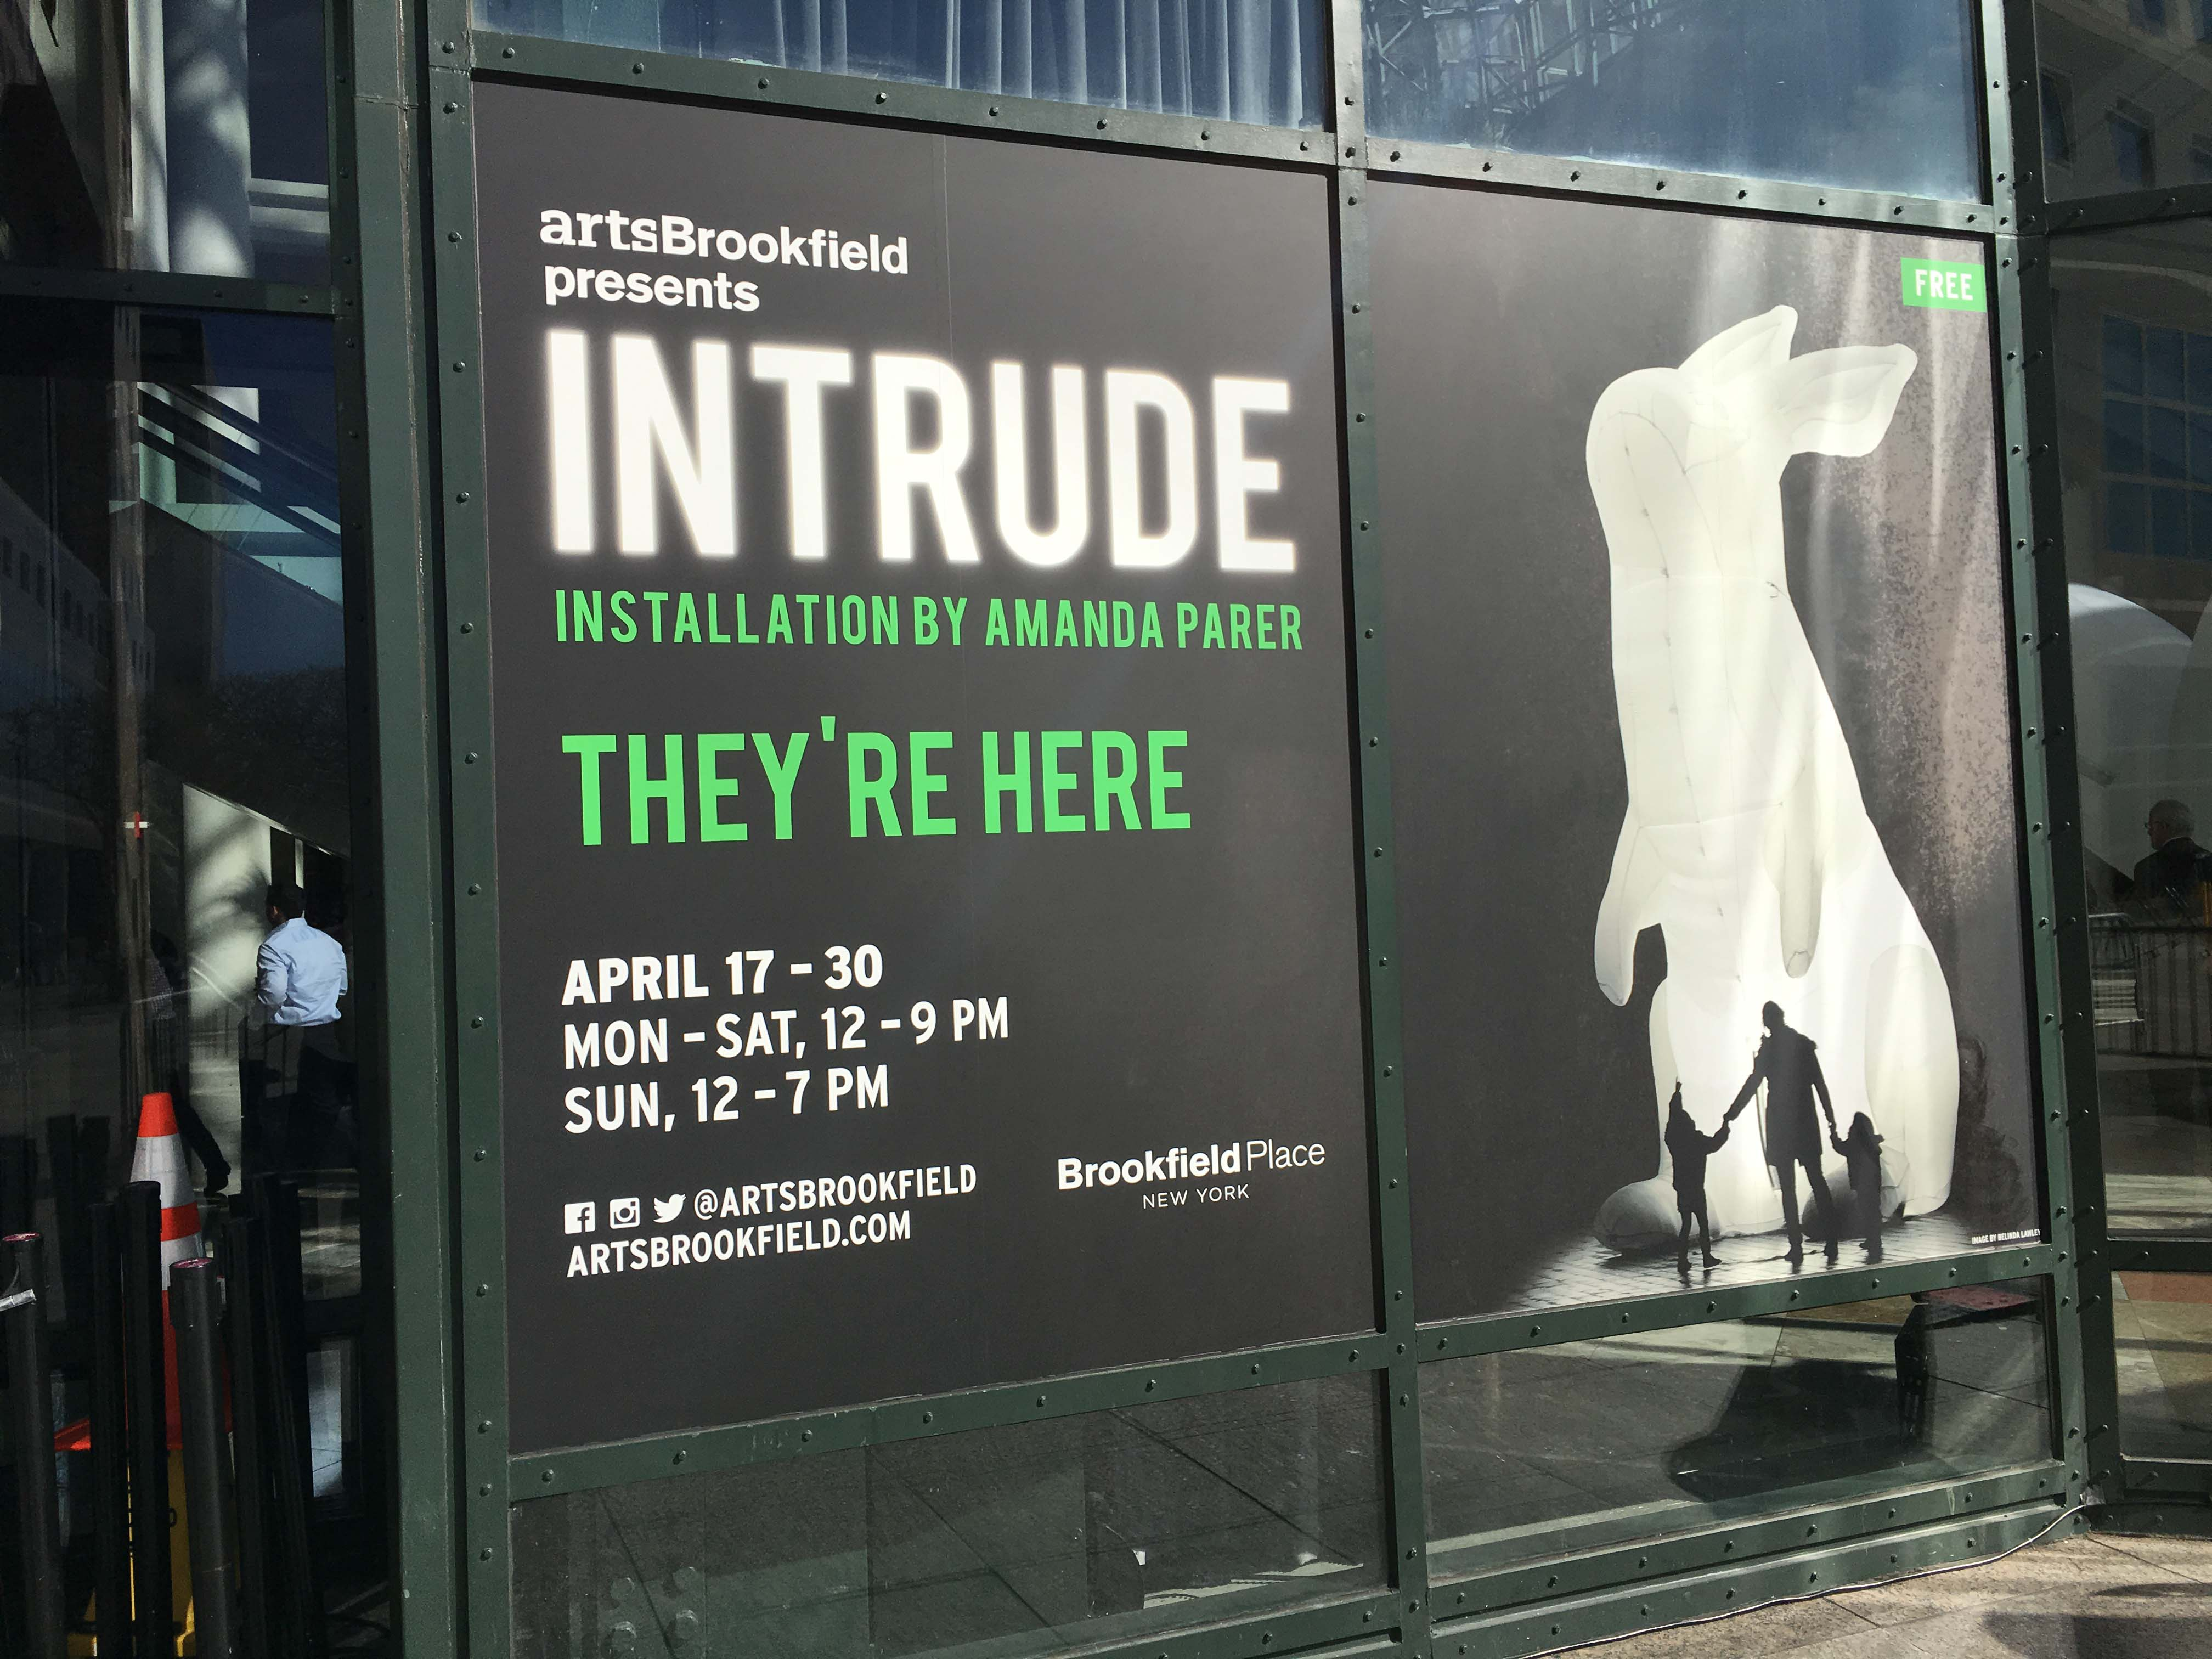 INtrude exhibit